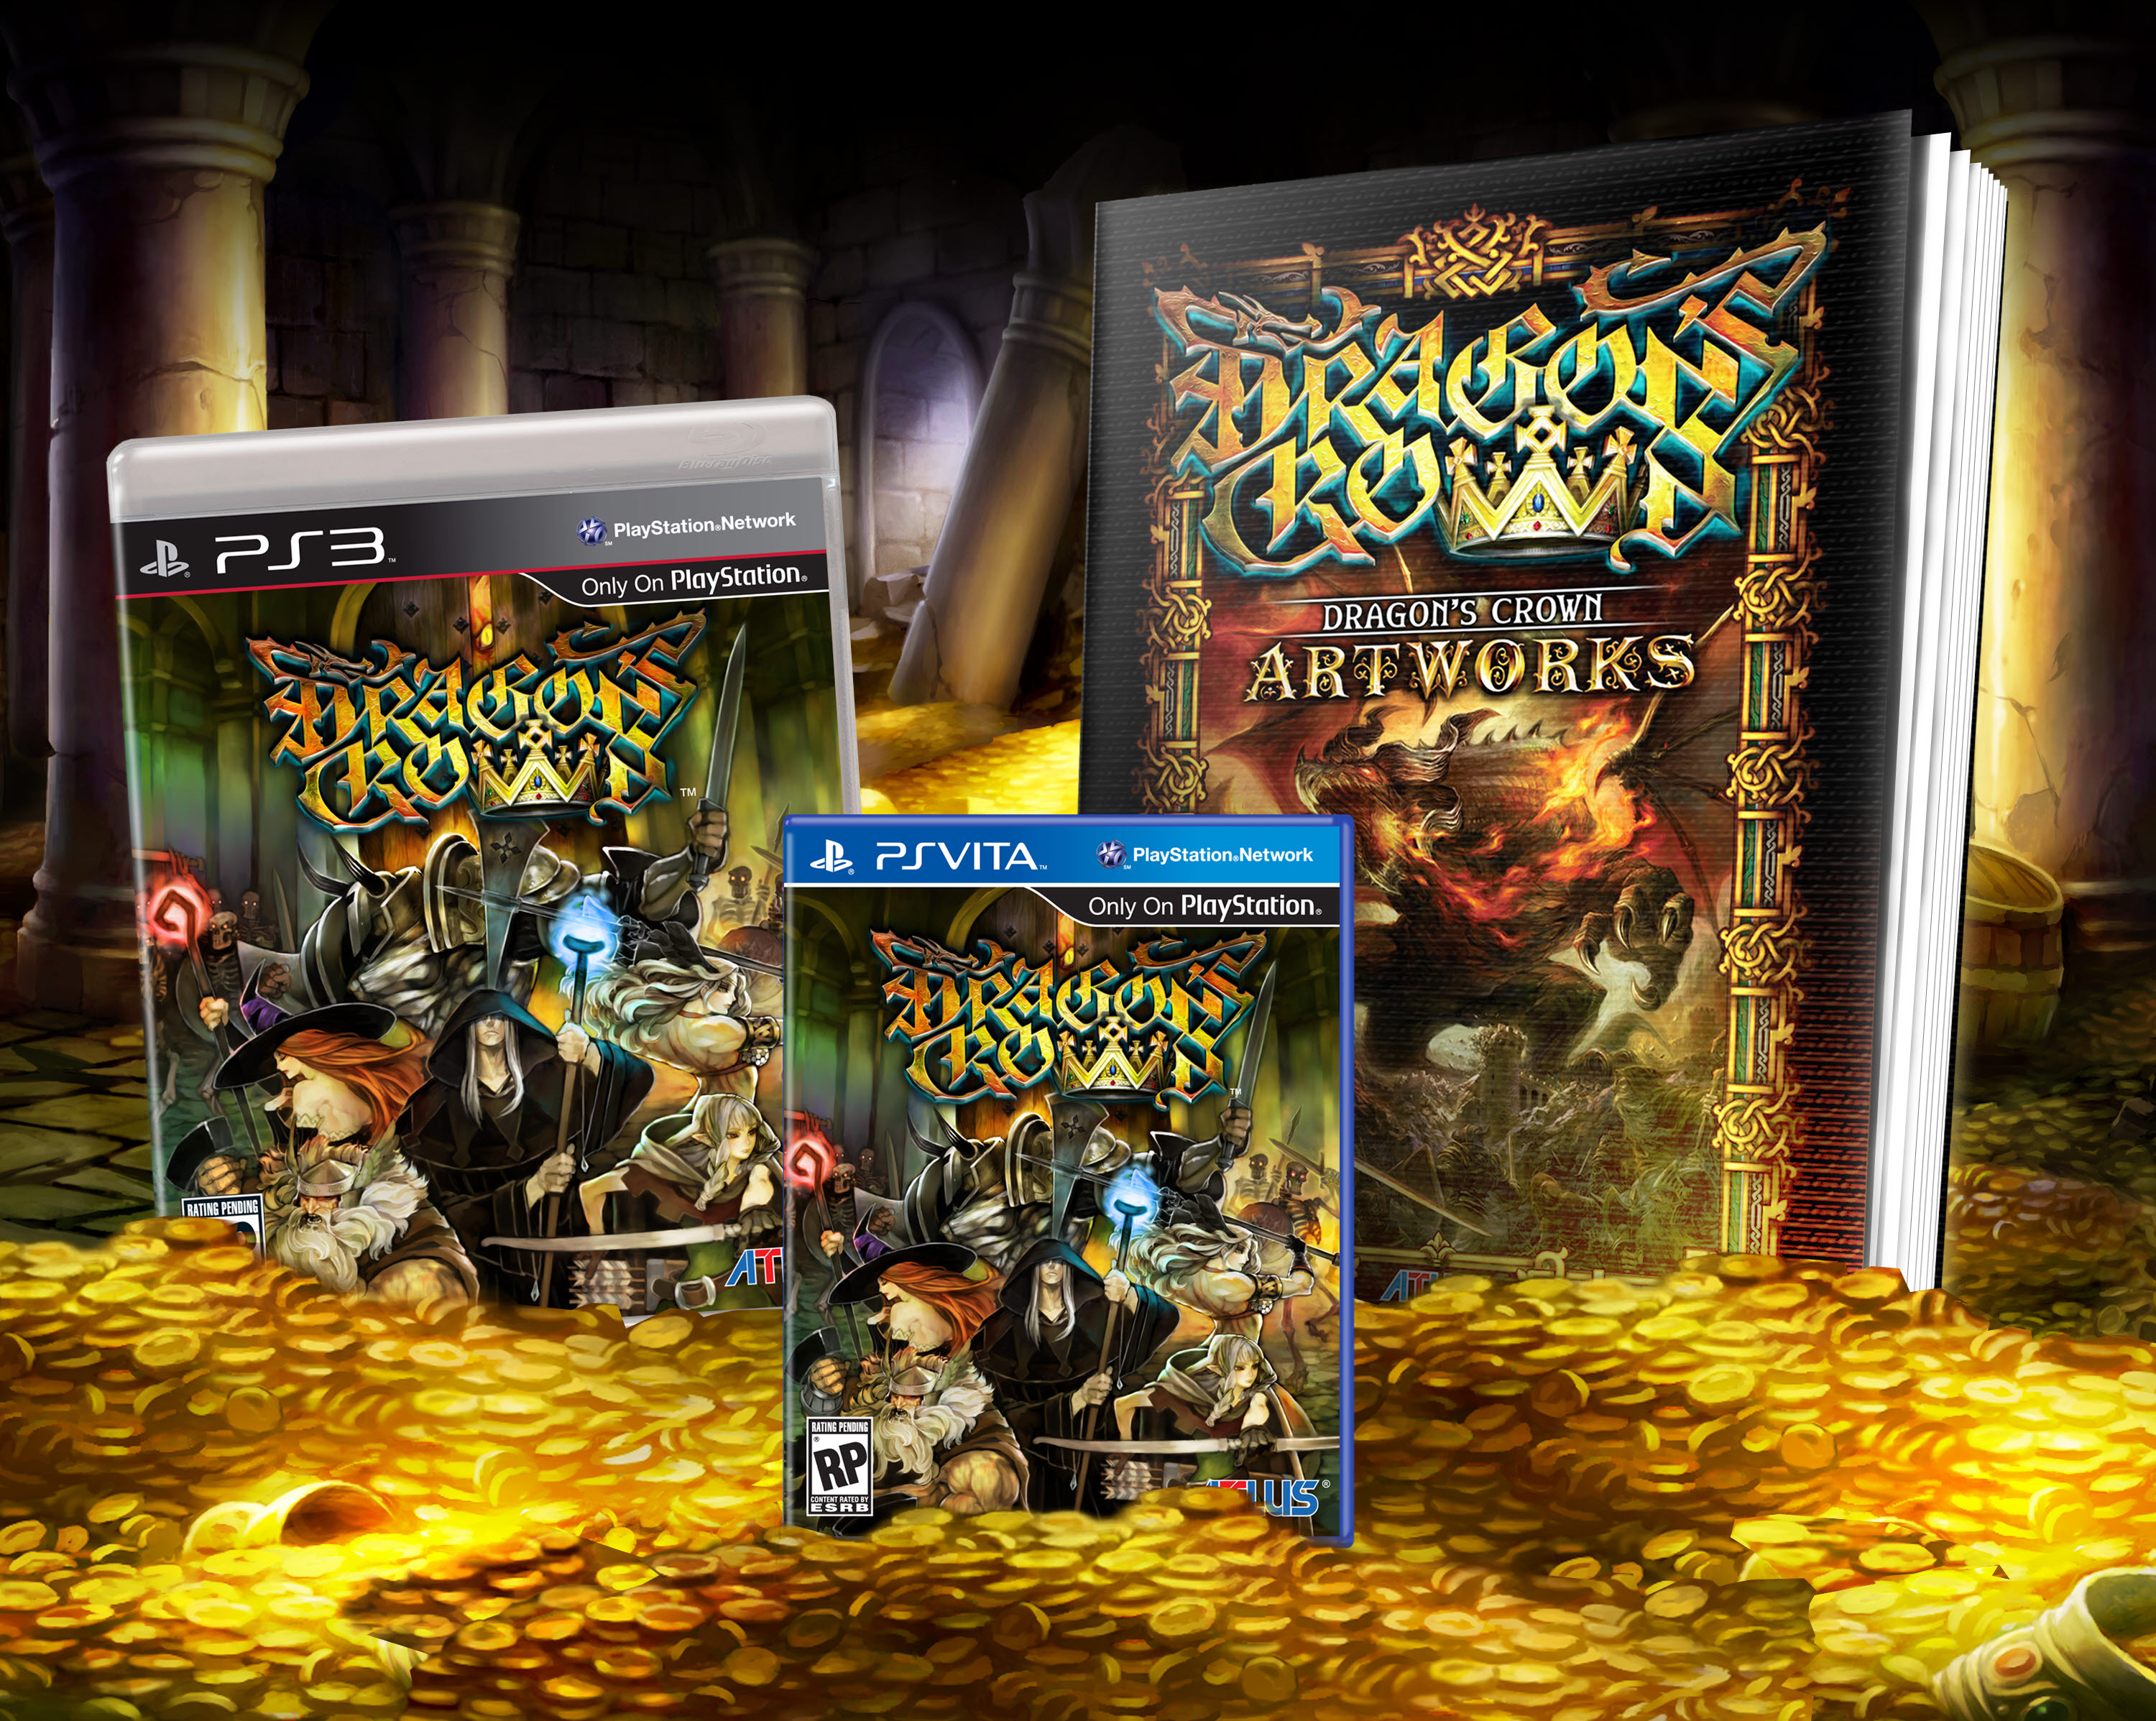 Dragon's crown pro royal package famitsu dx pack limited edition.